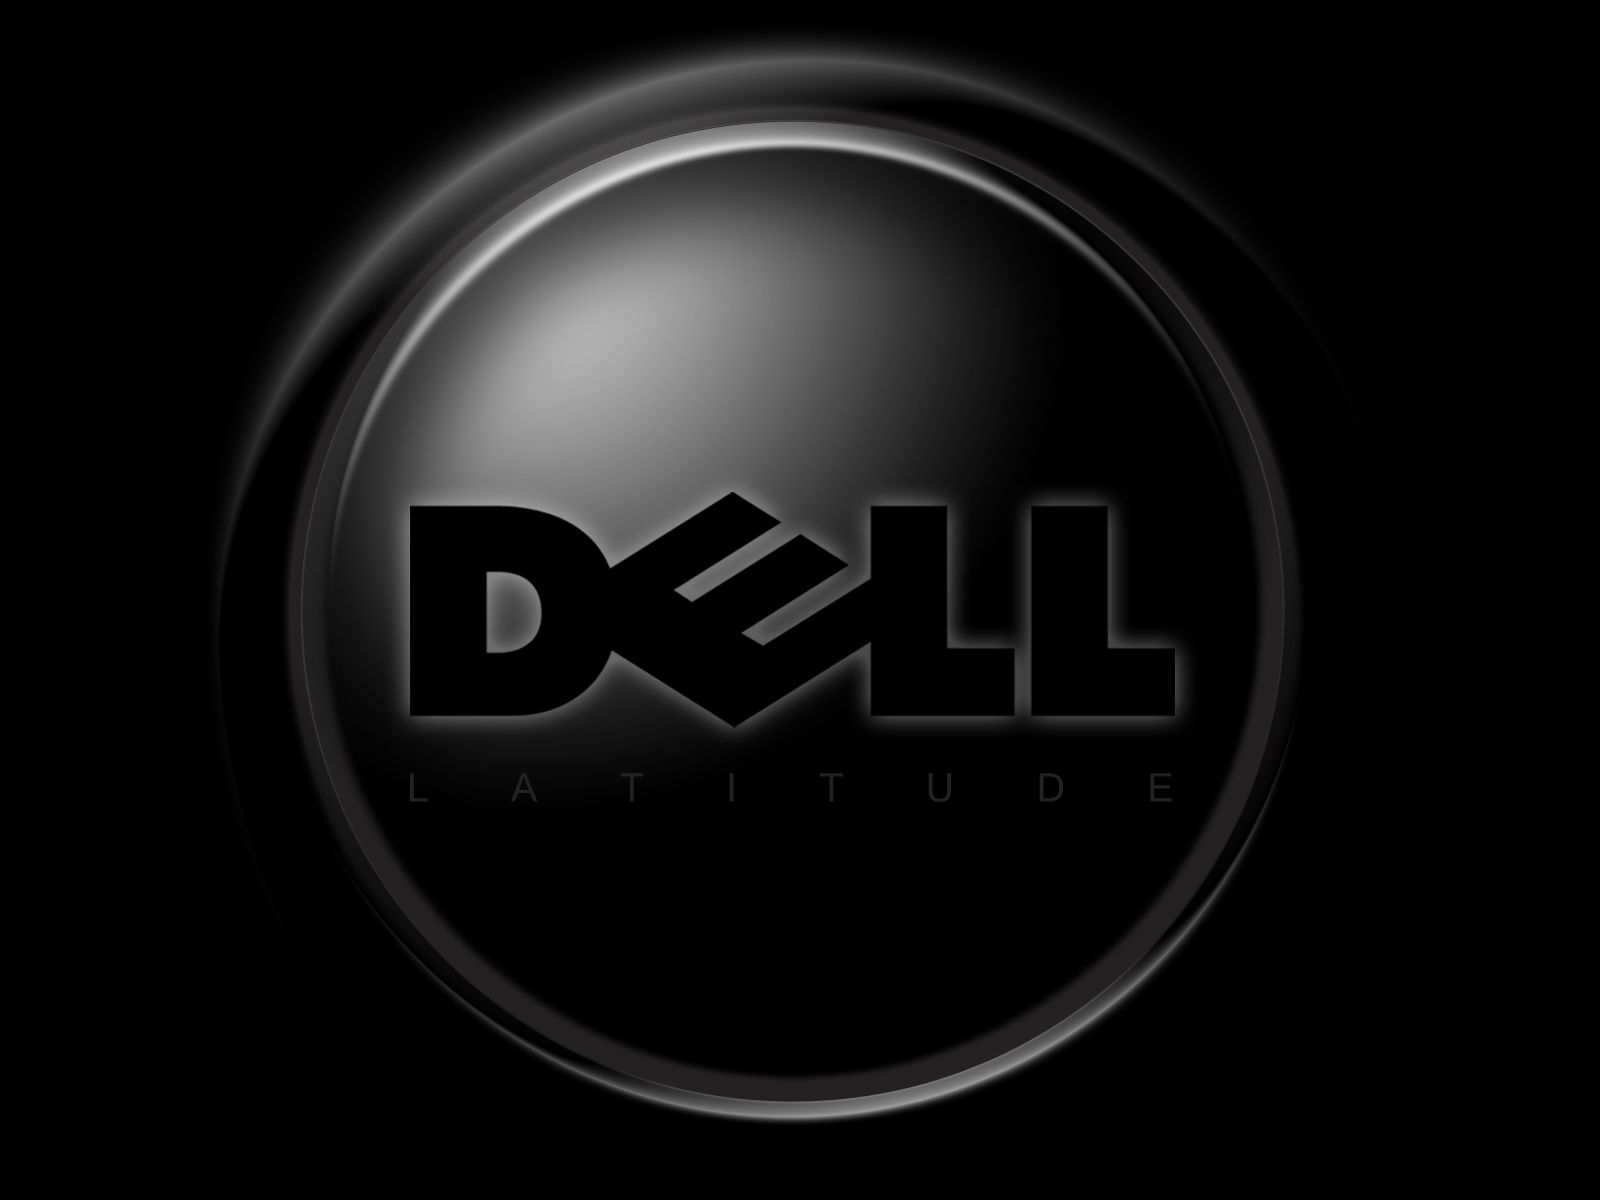 Dell desktop backgrounds wallpaper hd wallpapers pinterest dell desktop backgrounds wallpaper hd wallpapers pinterest dell desktop desktop backgrounds and wallpaper voltagebd Image collections